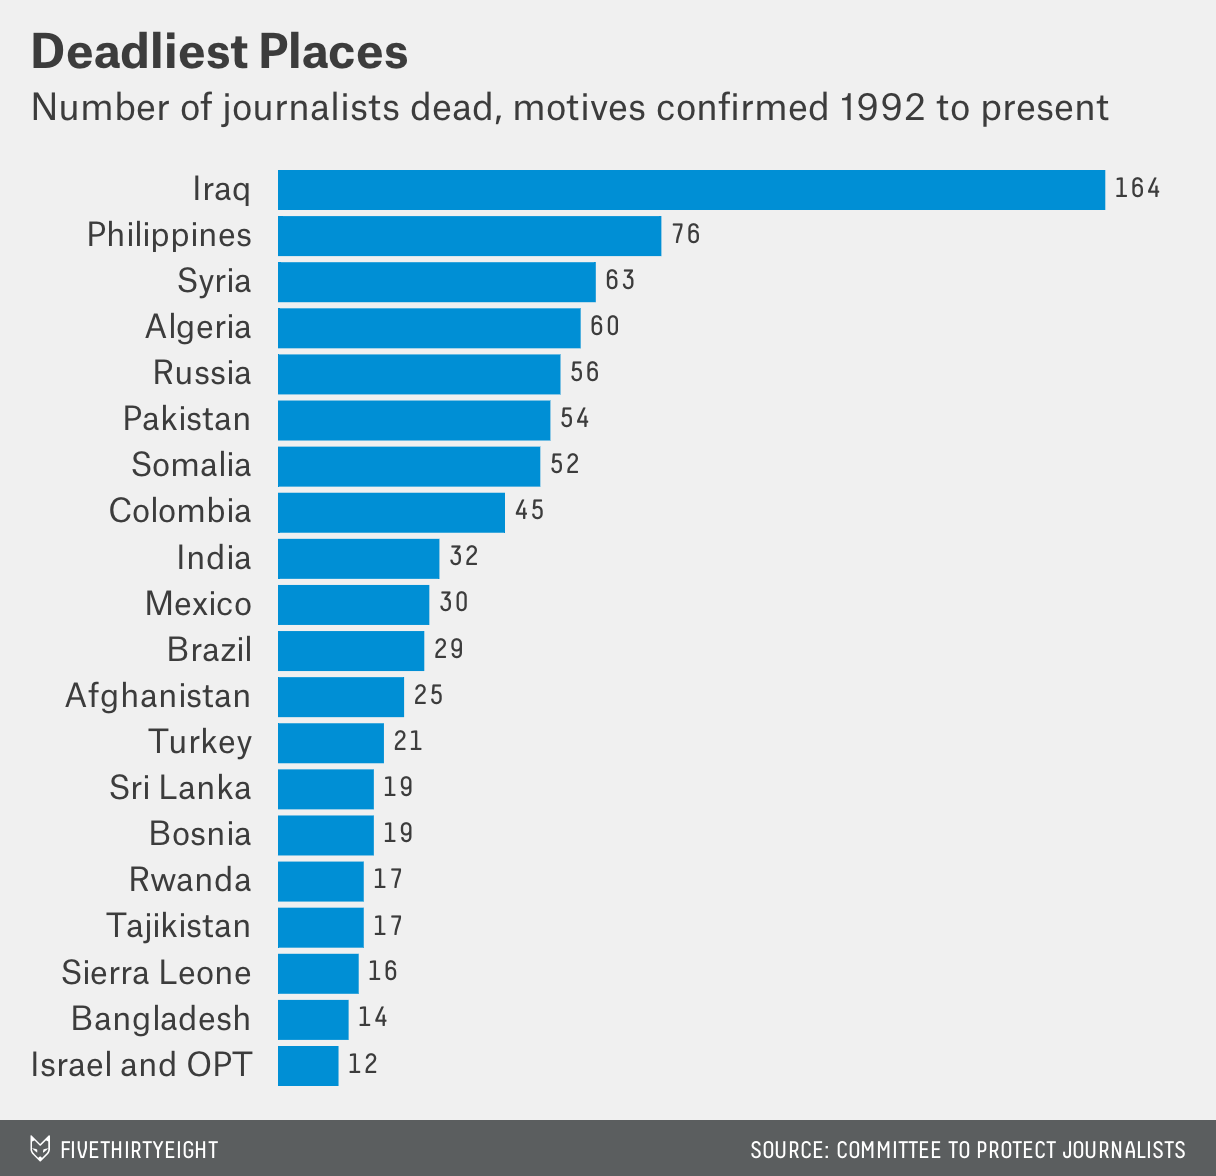 Deadliest places